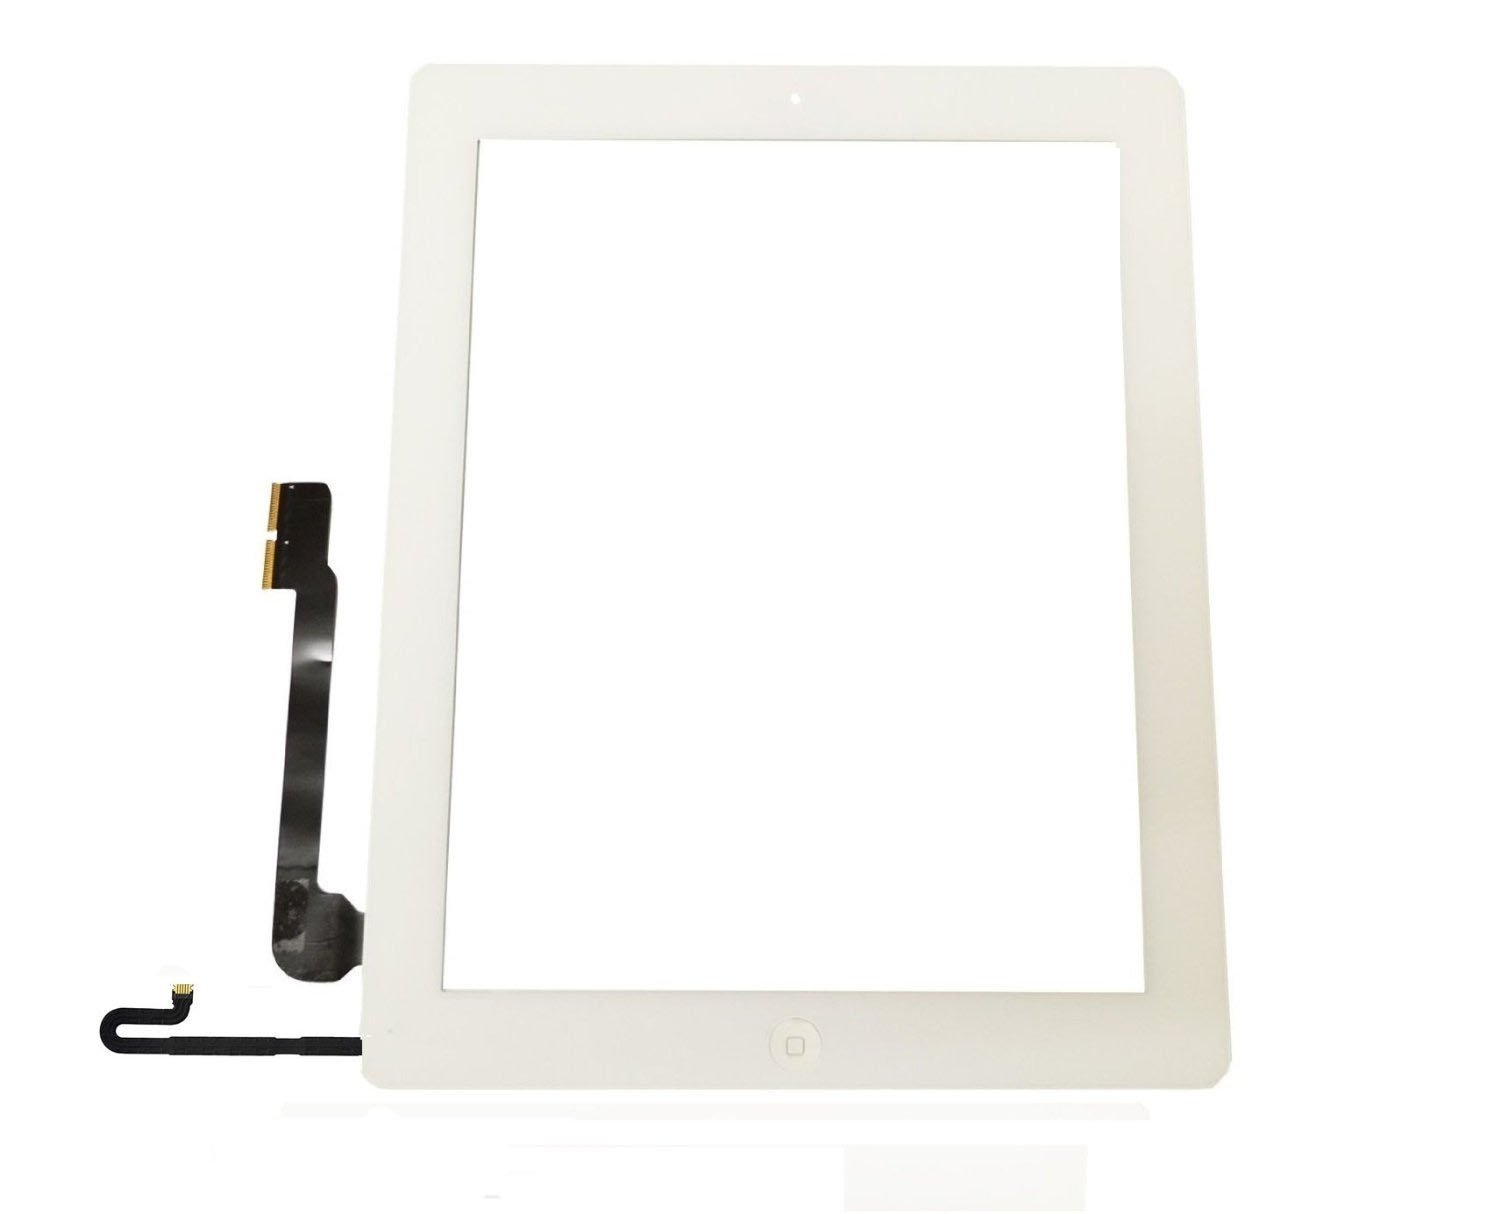 iPad 4 Glass & Touch Digitizer Replacement - White - Original Quality